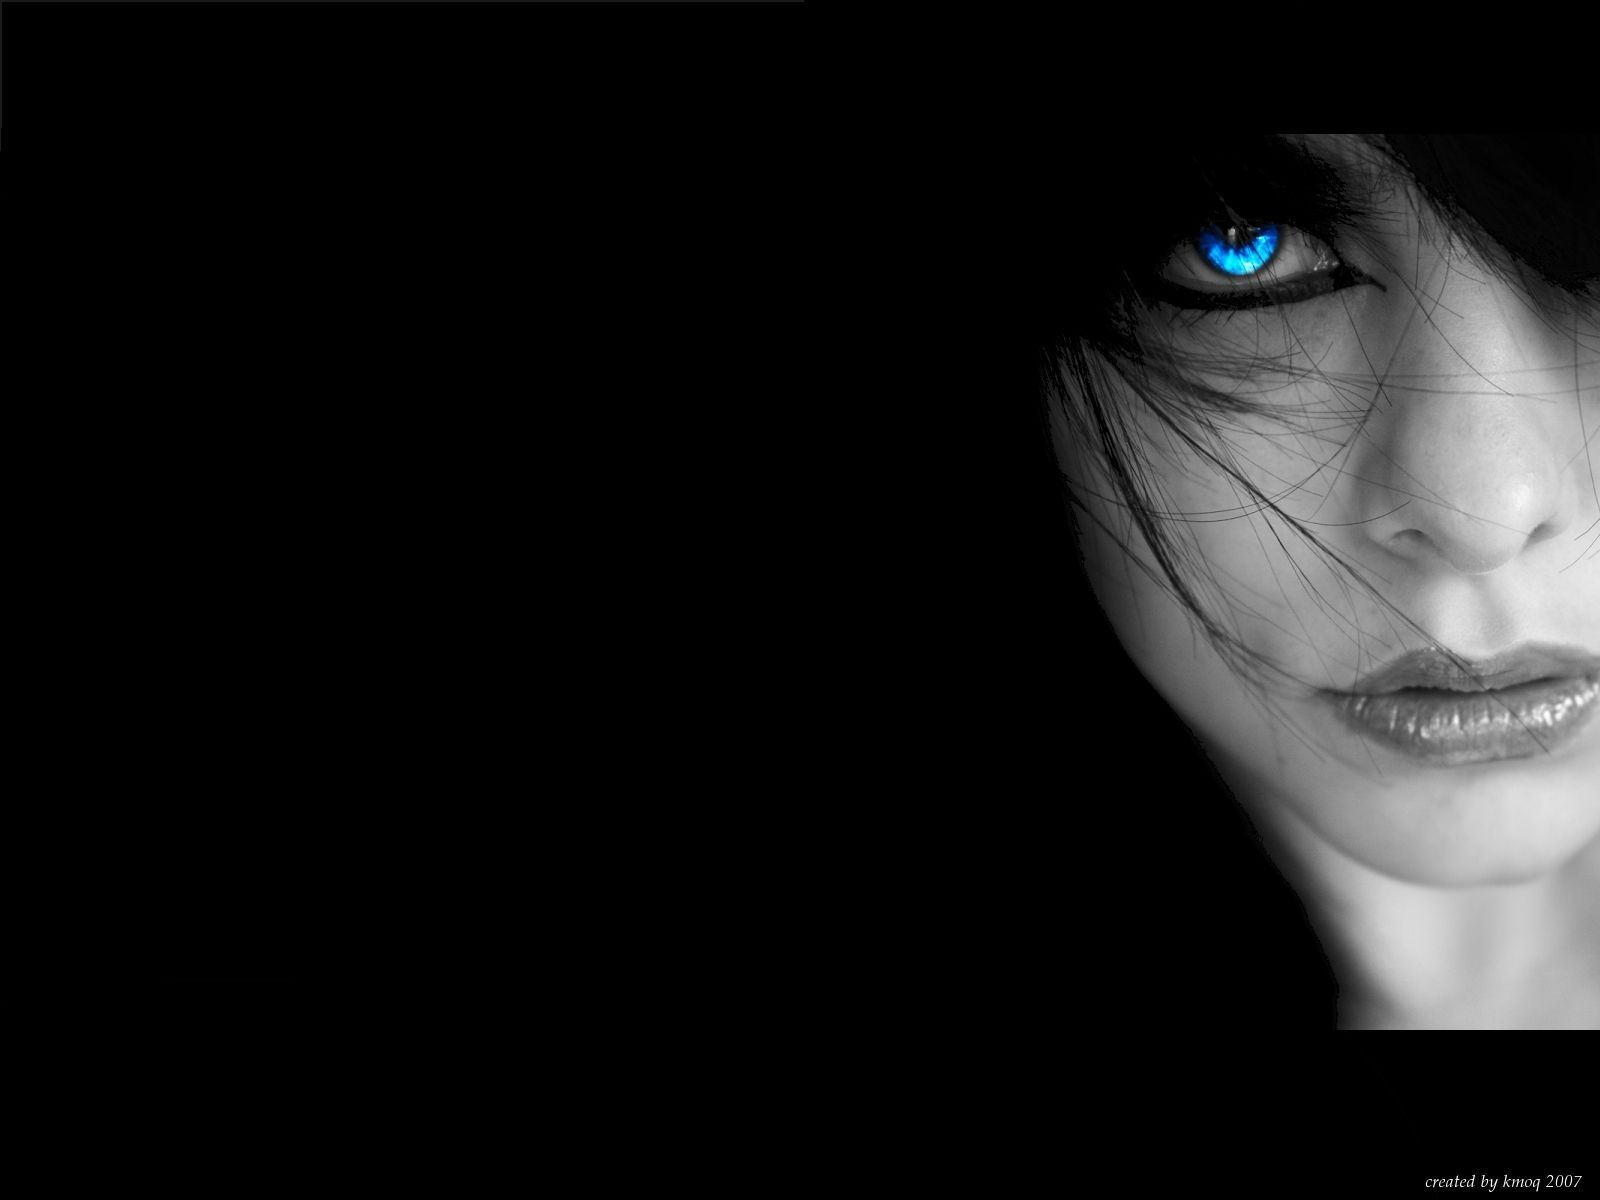 Hd wallpaper eyes - Beautiful Eyes Wallpapers Hd Pictures One Hd Wallpaper Pictures